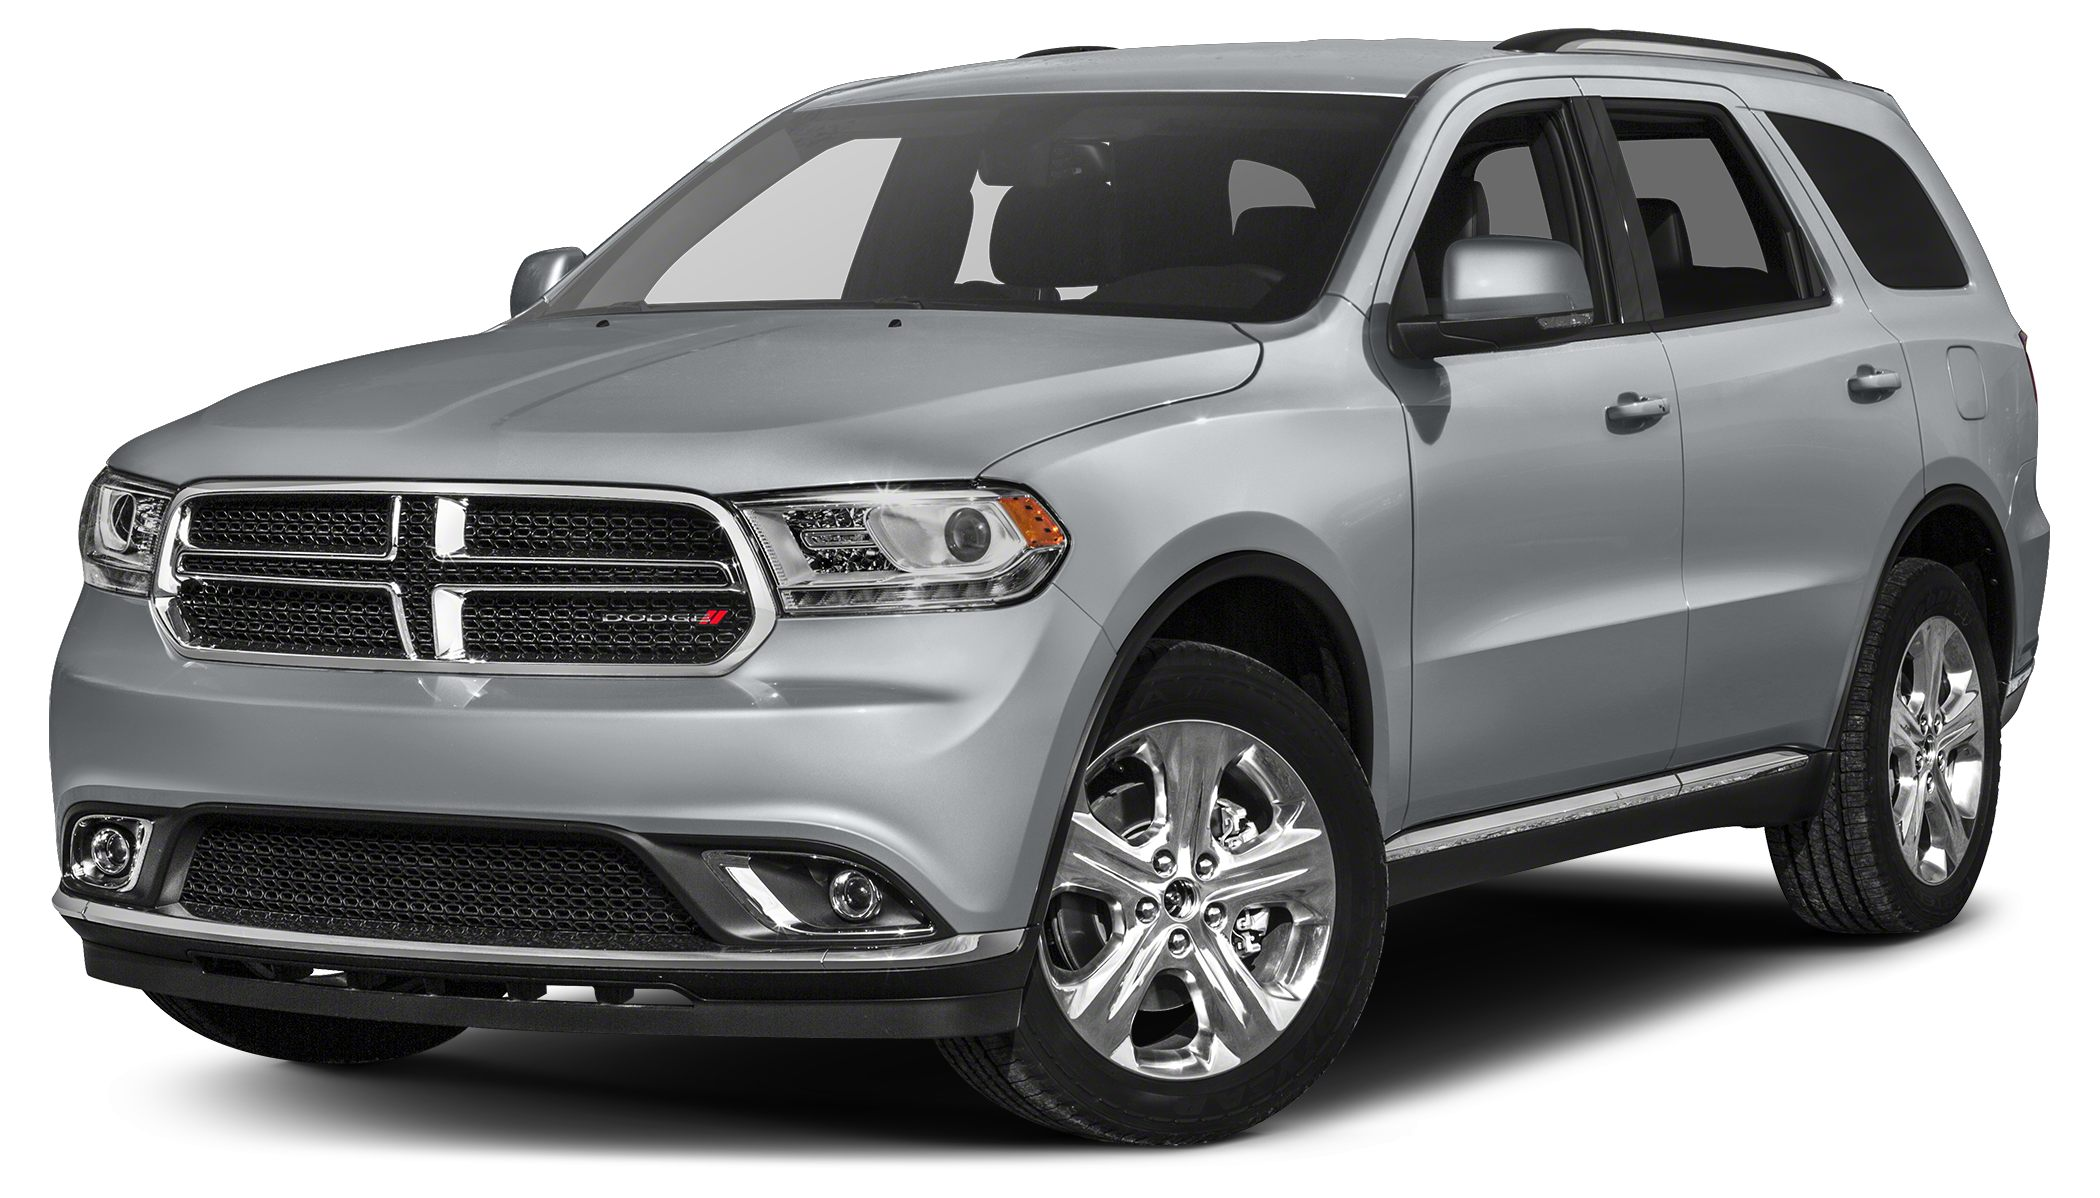 2015 Dodge Durango Limited CARFAX 1-Owner Excellent Condition ONLY 17777 Miles FUEL EFFICIENT